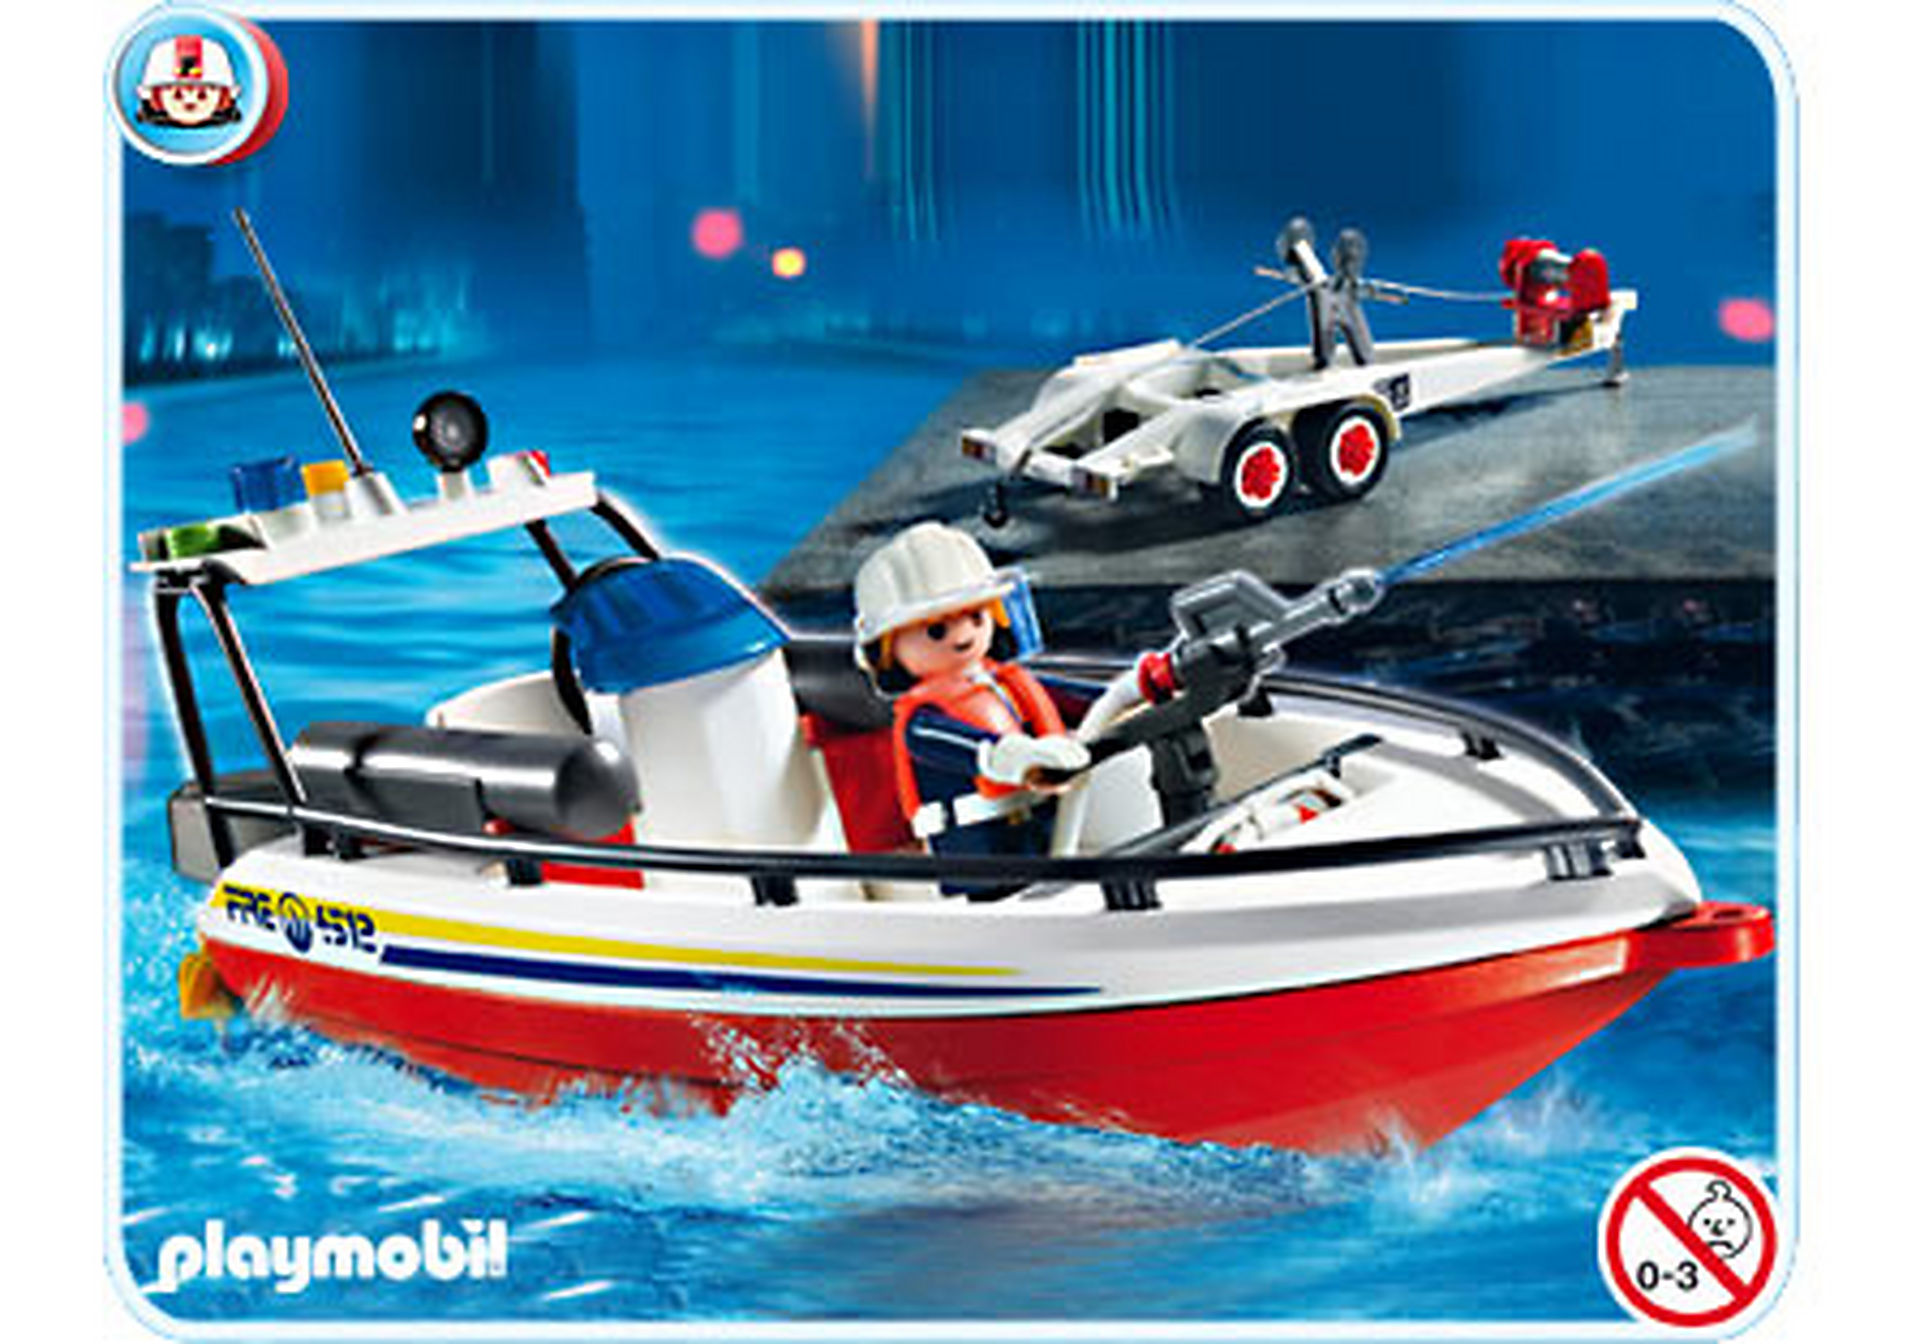 http://media.playmobil.com/i/playmobil/4823-A_product_detail/Feuerwehrboot